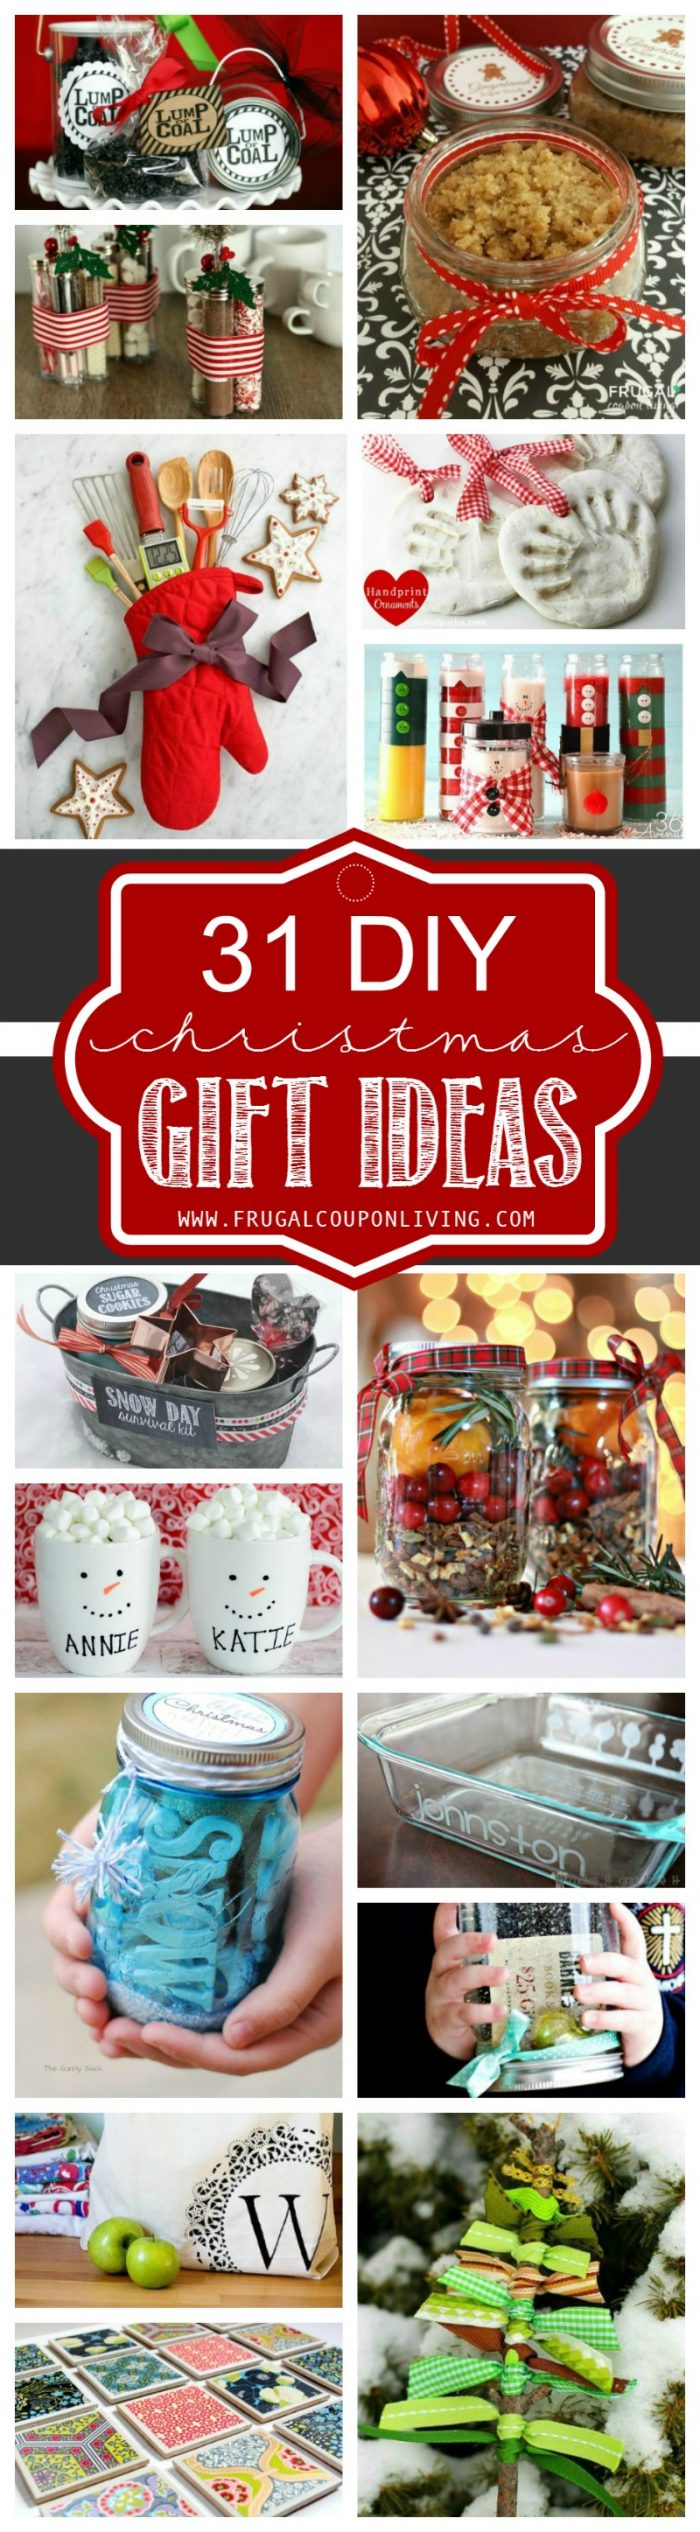 31 diy christmas gift ideas Homemade christmas gifts